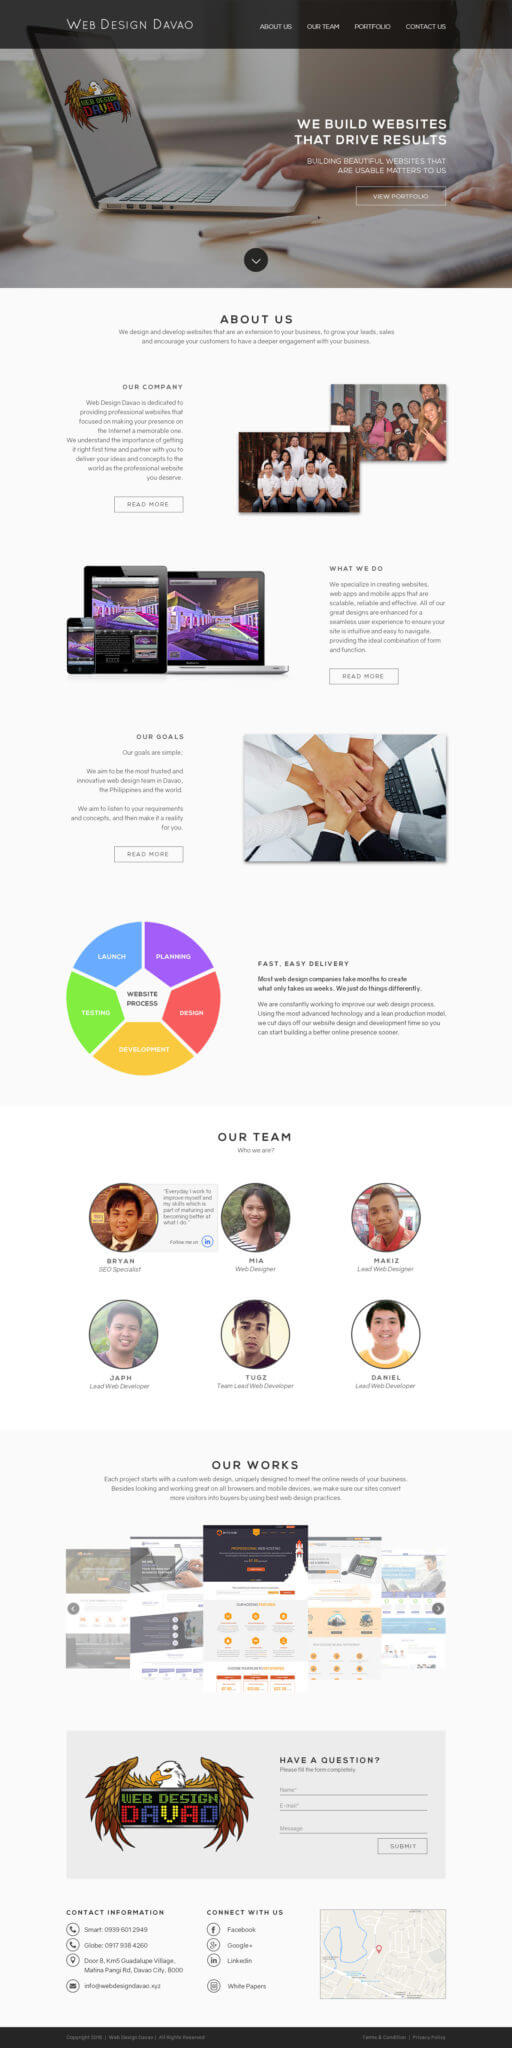 web-design-davao